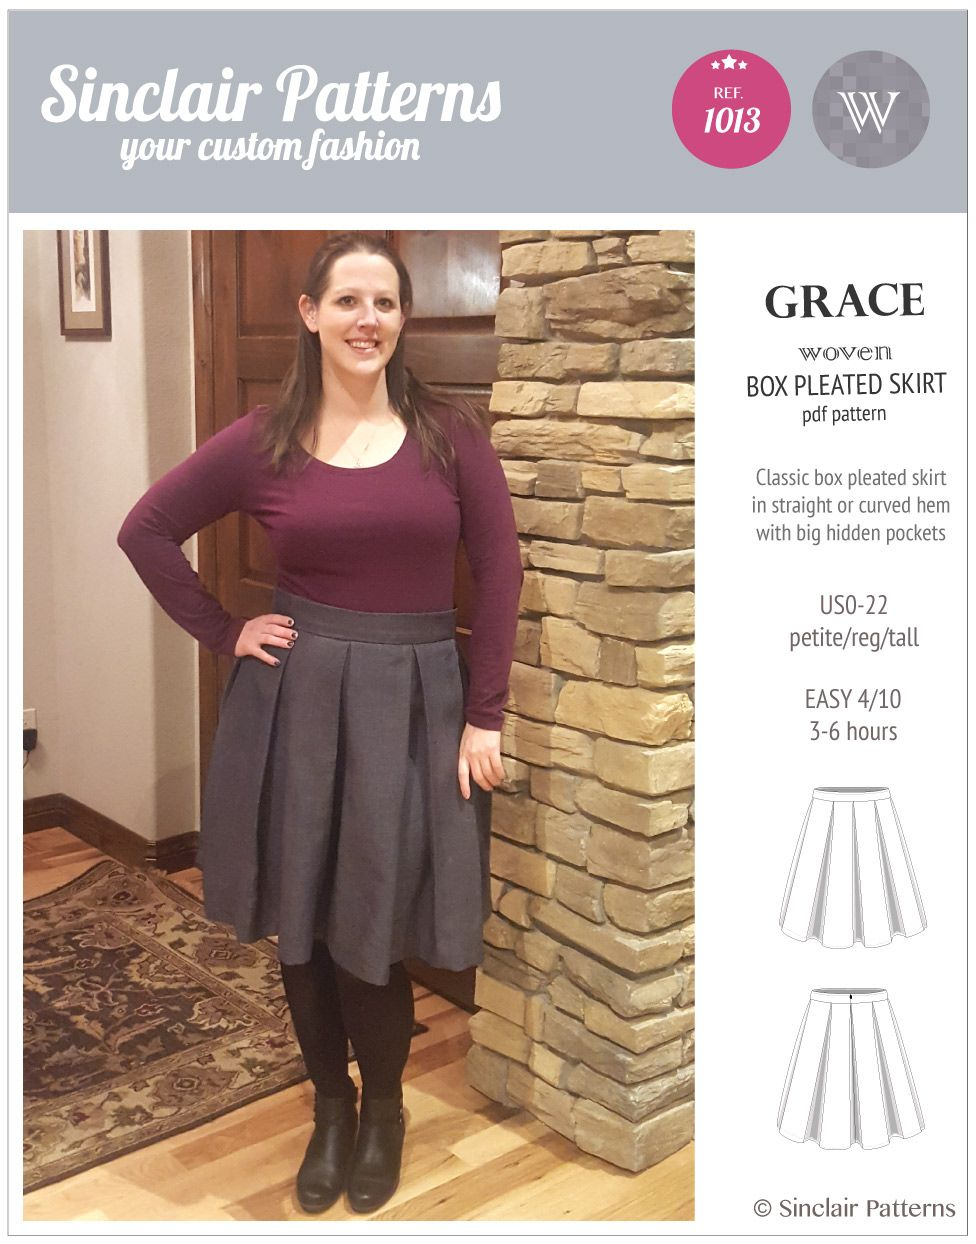 Grace Box Pleated Lined Woven Skirt With Pockets Pdf With Images Skirts Box Pleat Skirt Skirts With Pockets